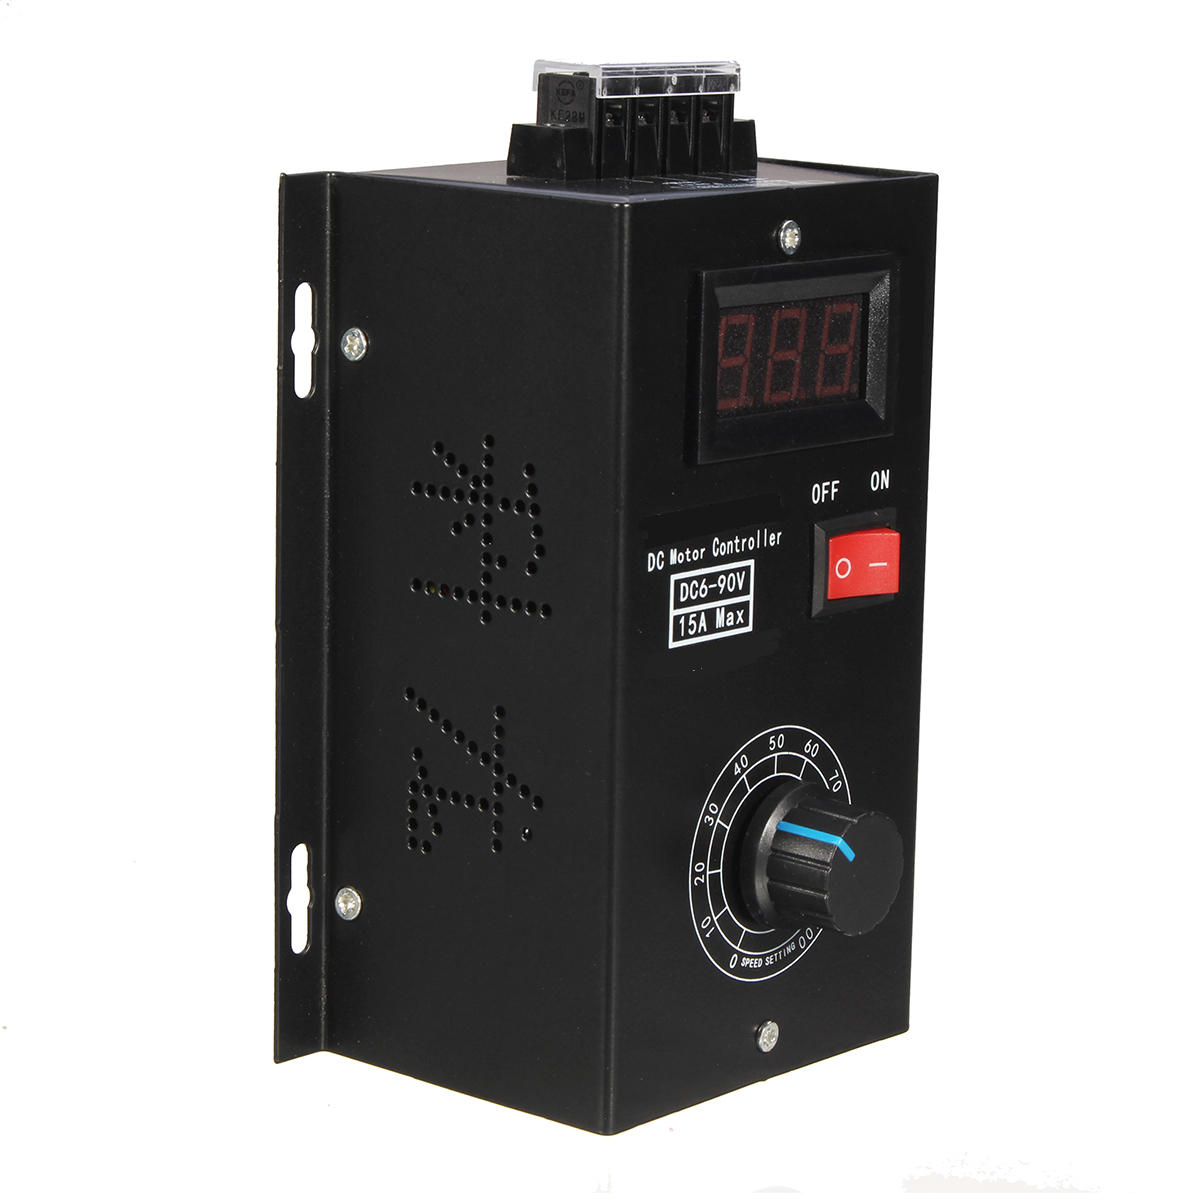 Precise 6-90v 15a Dc Motor Speed Controller Pulse Width Pwm Speed Regulator Switch 16khz High Standard In Quality And Hygiene Integrated Circuits